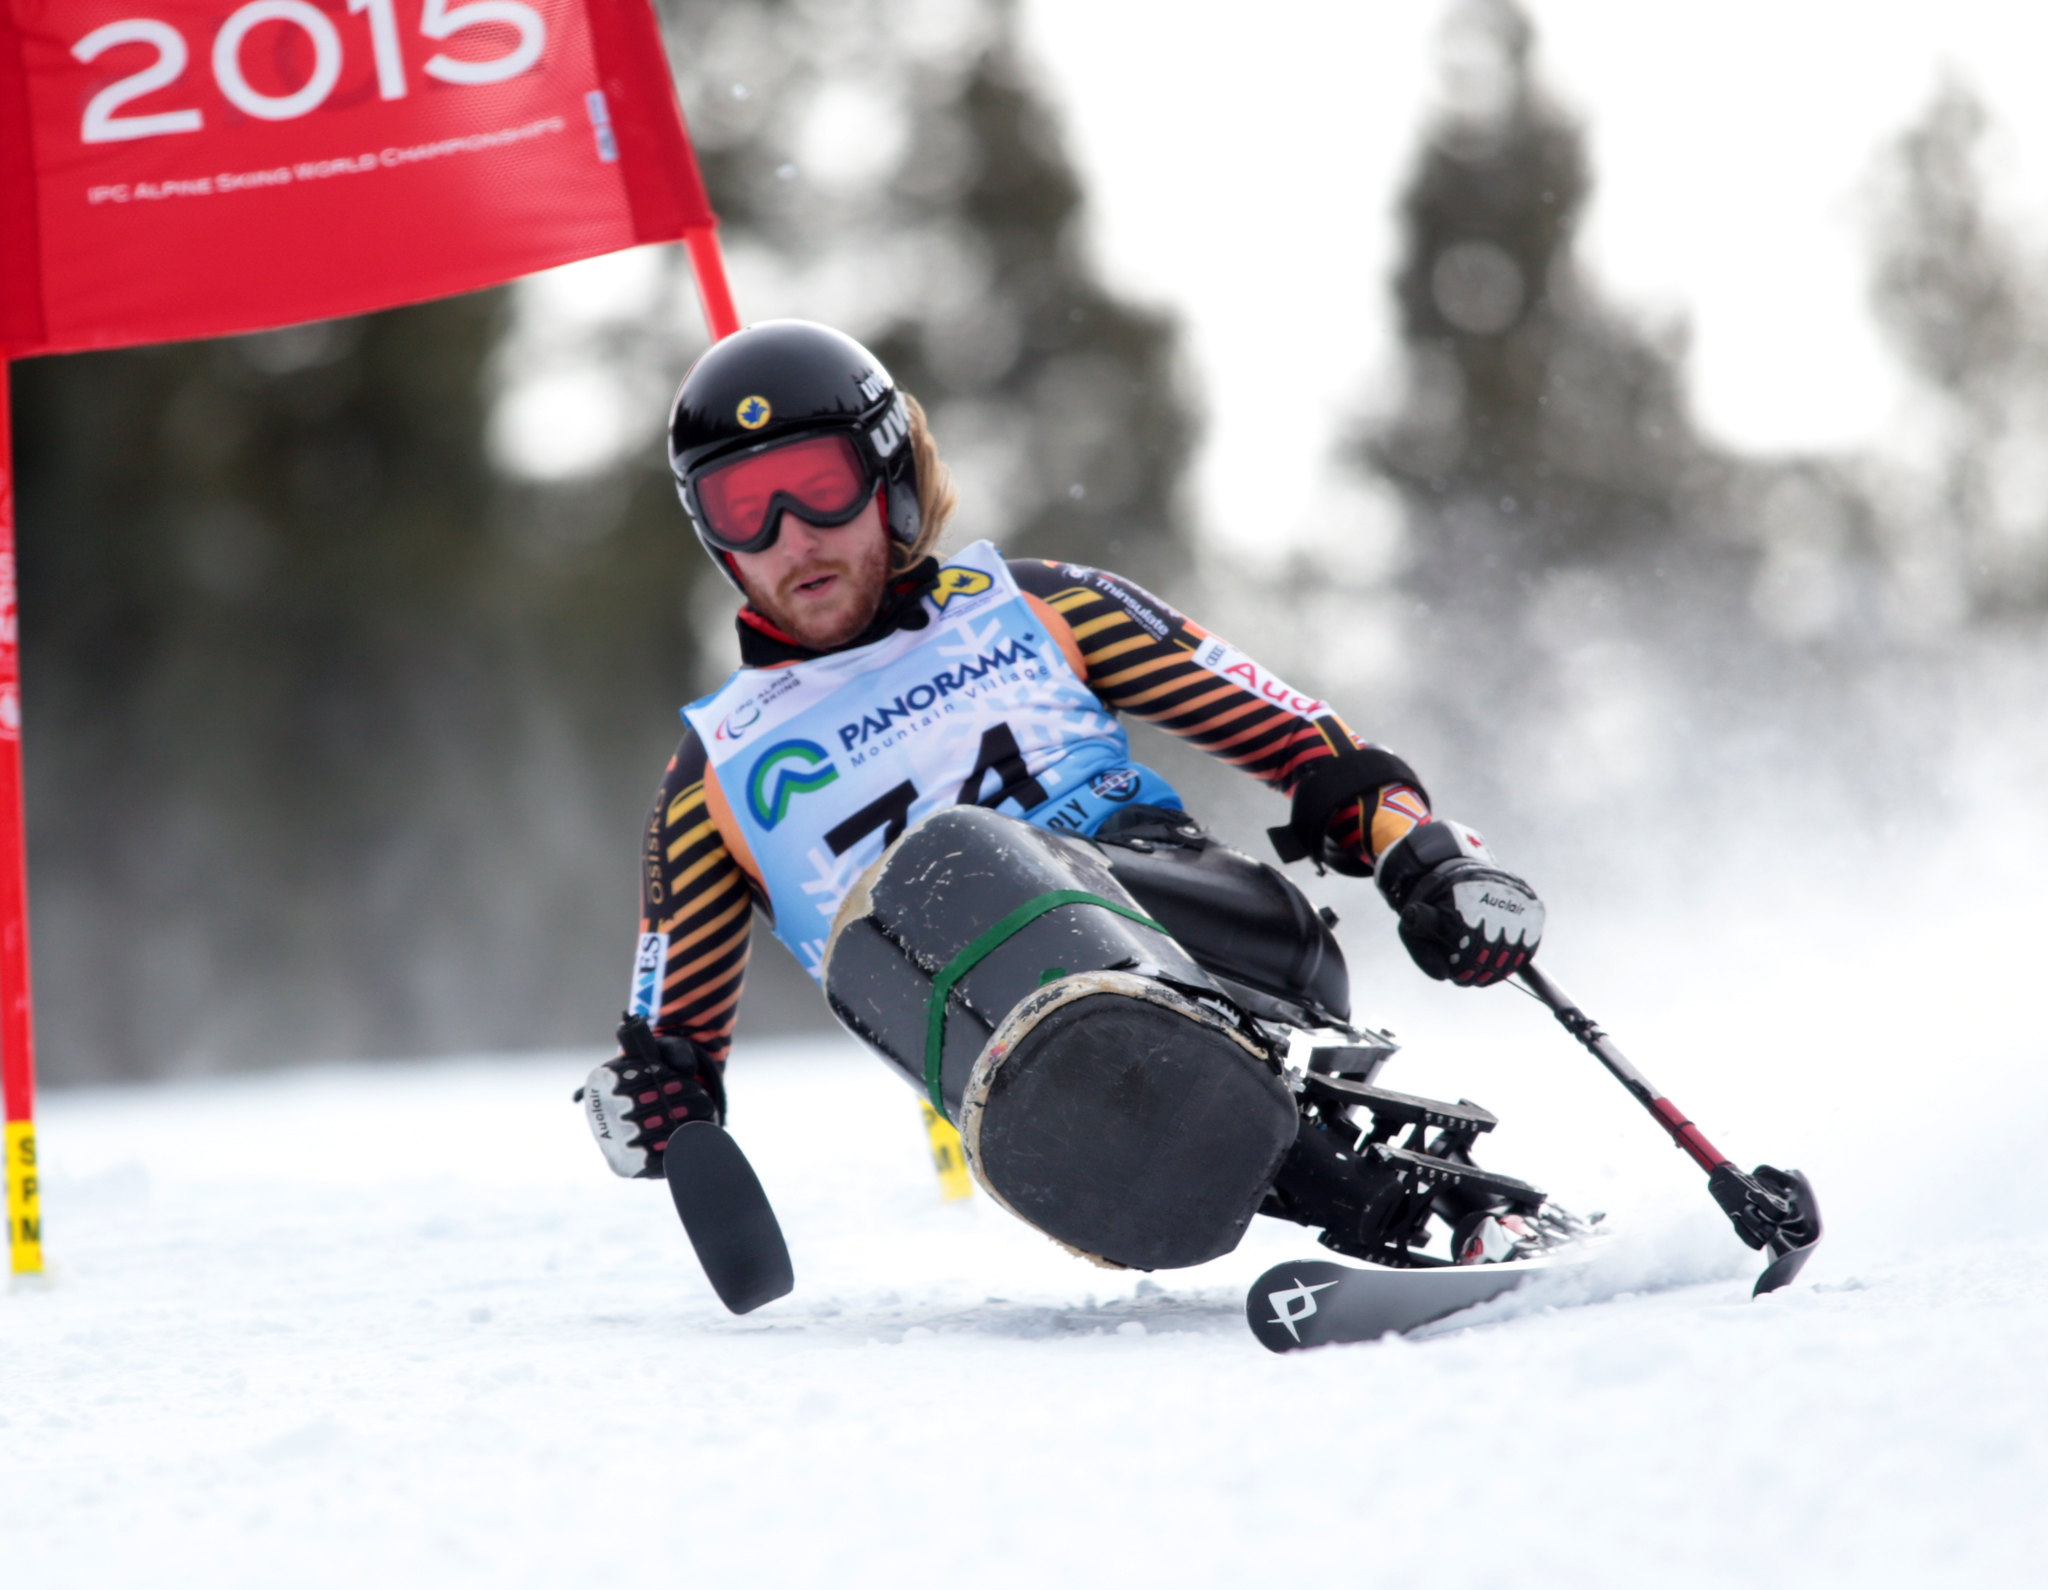 Caleb Brousseau sails down the mountain during the Super-G in Panorama, CAN